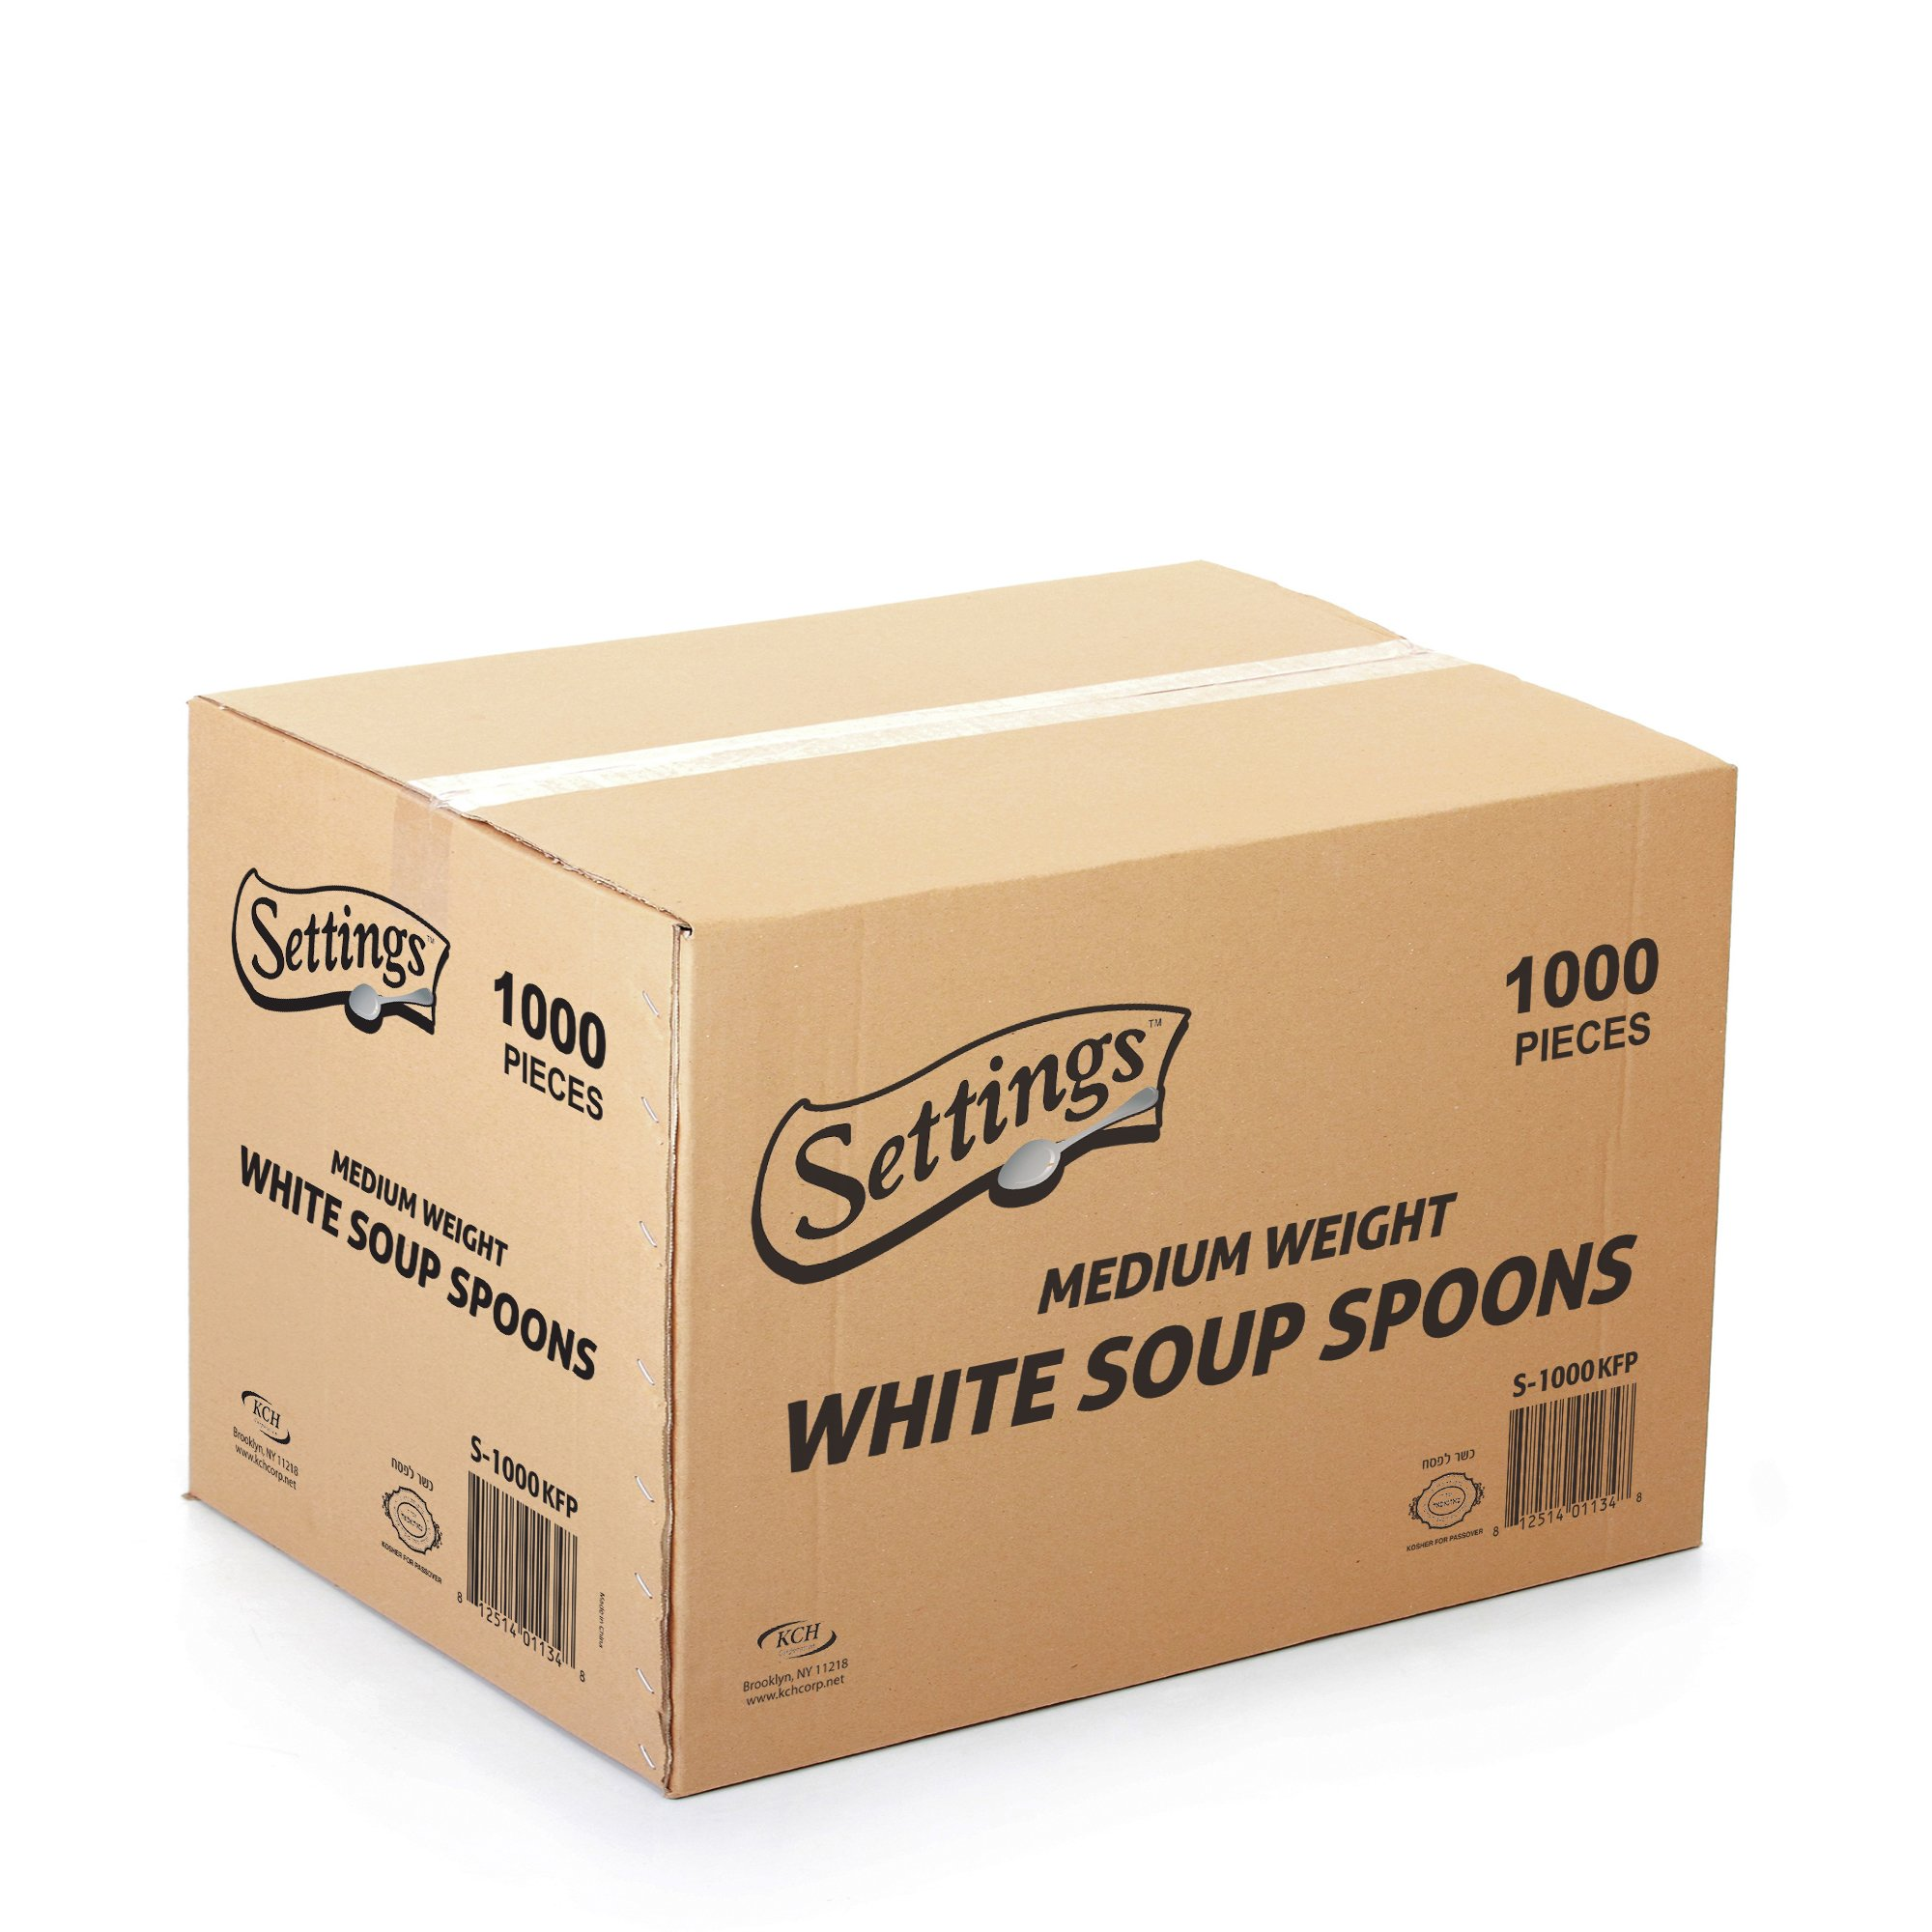 [1000 Count] Settings Plastic White Soup Spoons, Practical Disposable Cutlery, Great For Home, Office, School, Party, Picnics, Restaurant, Take-out Fast Food, Outdoor Events, Or Every Day Use, 1 Box by Settings